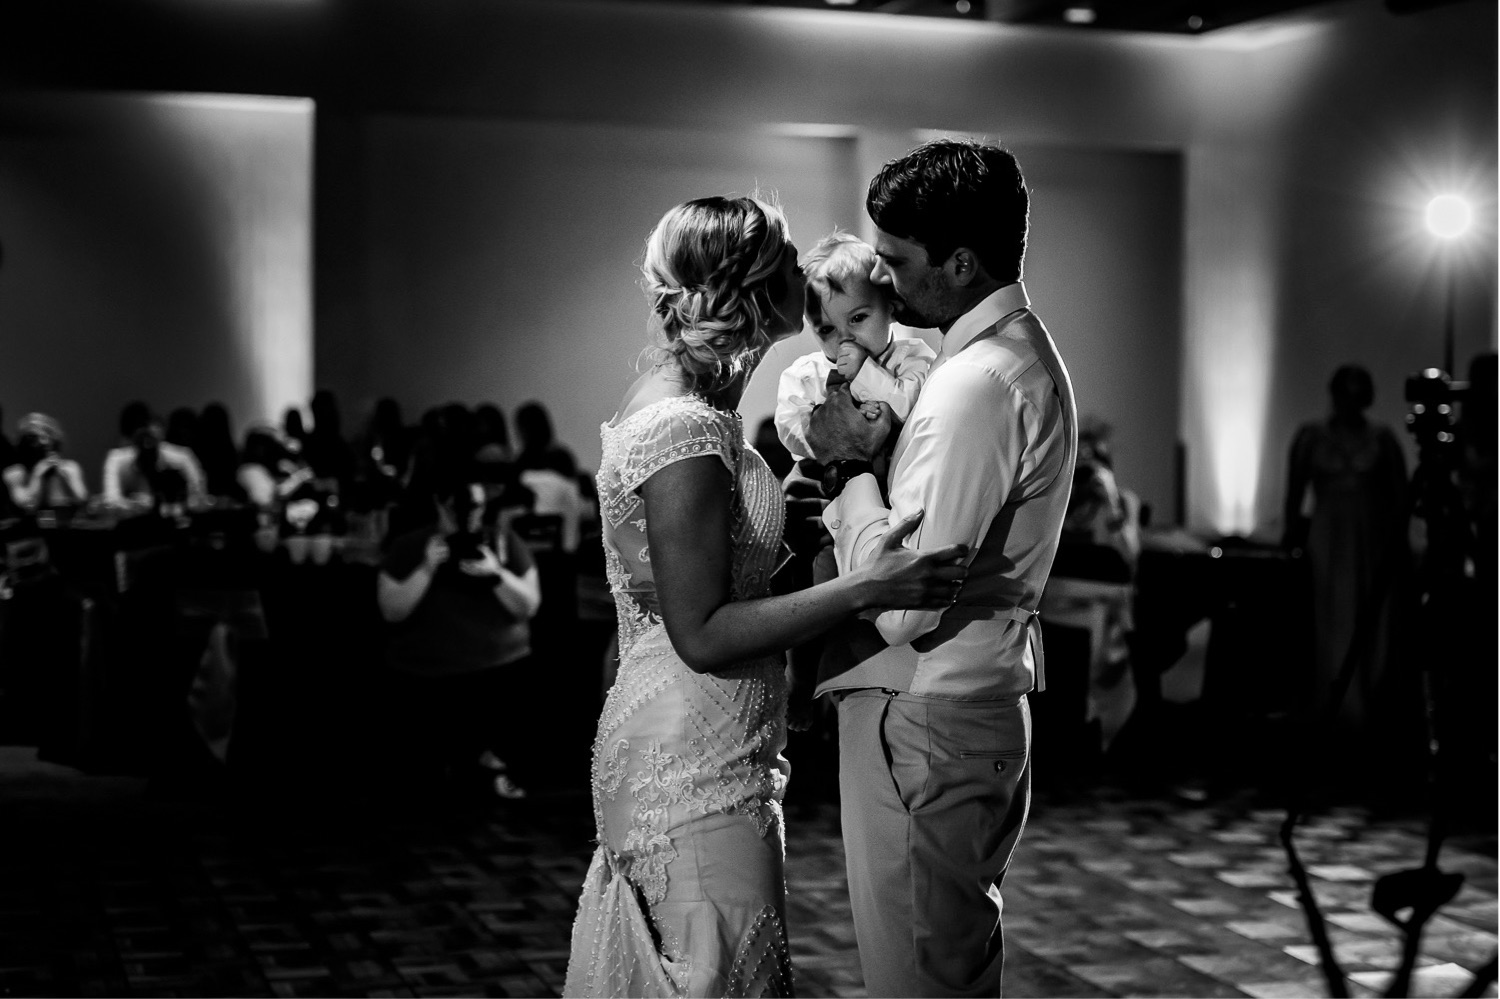 62_Shannon and Dylan June 15 ALL RAW6971_Photographer_Alberta_Drumheller_Groom_Bride_Wedding_Badlands_Dance_Community_BadlandCommunityFacility_Facility_reception.jpg